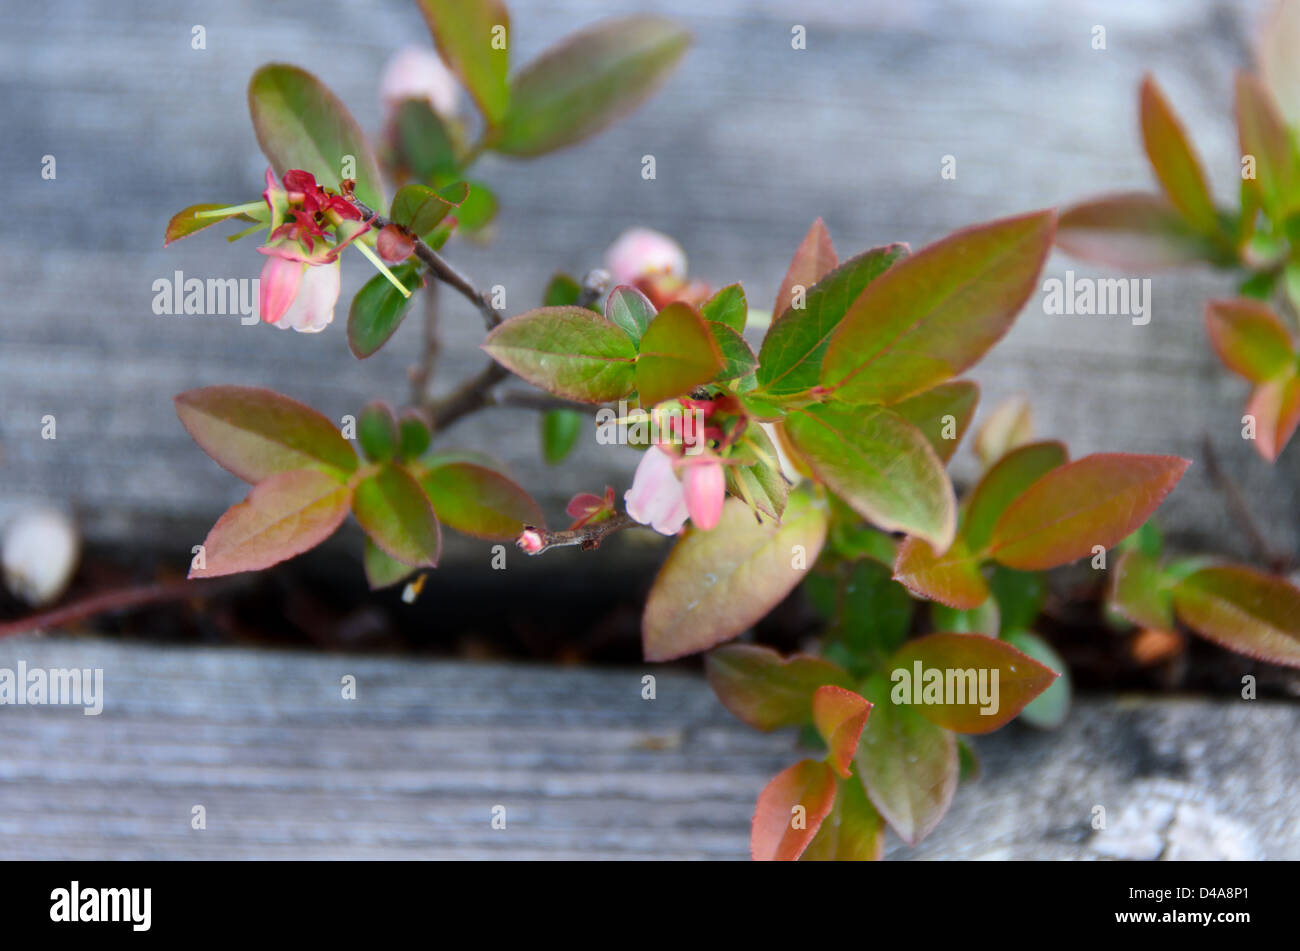 flowering blueberry plant growing between planks of boardwalk - Stock Image